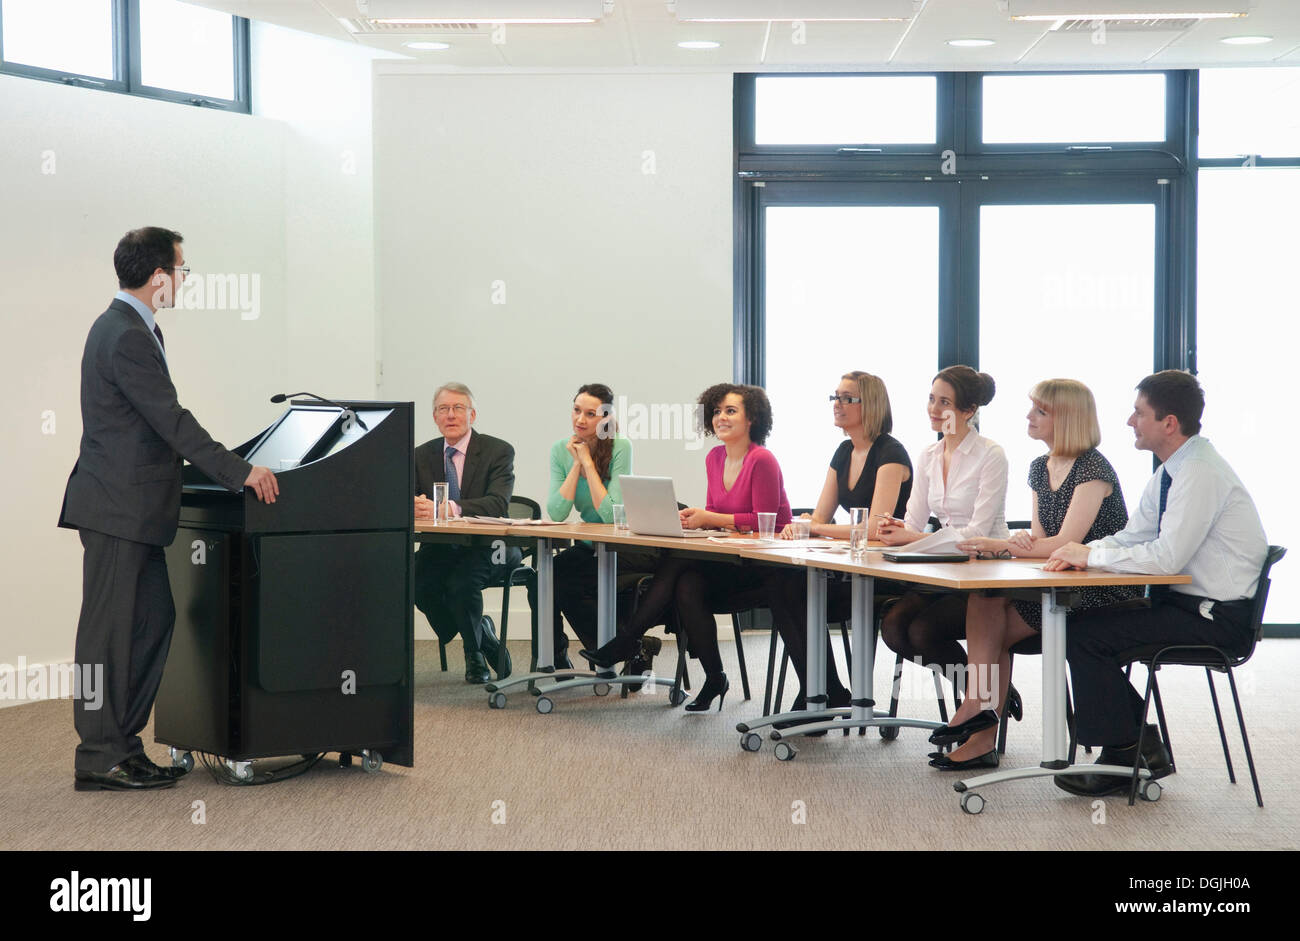 Presenter speaking to group of colleagues - Stock Image